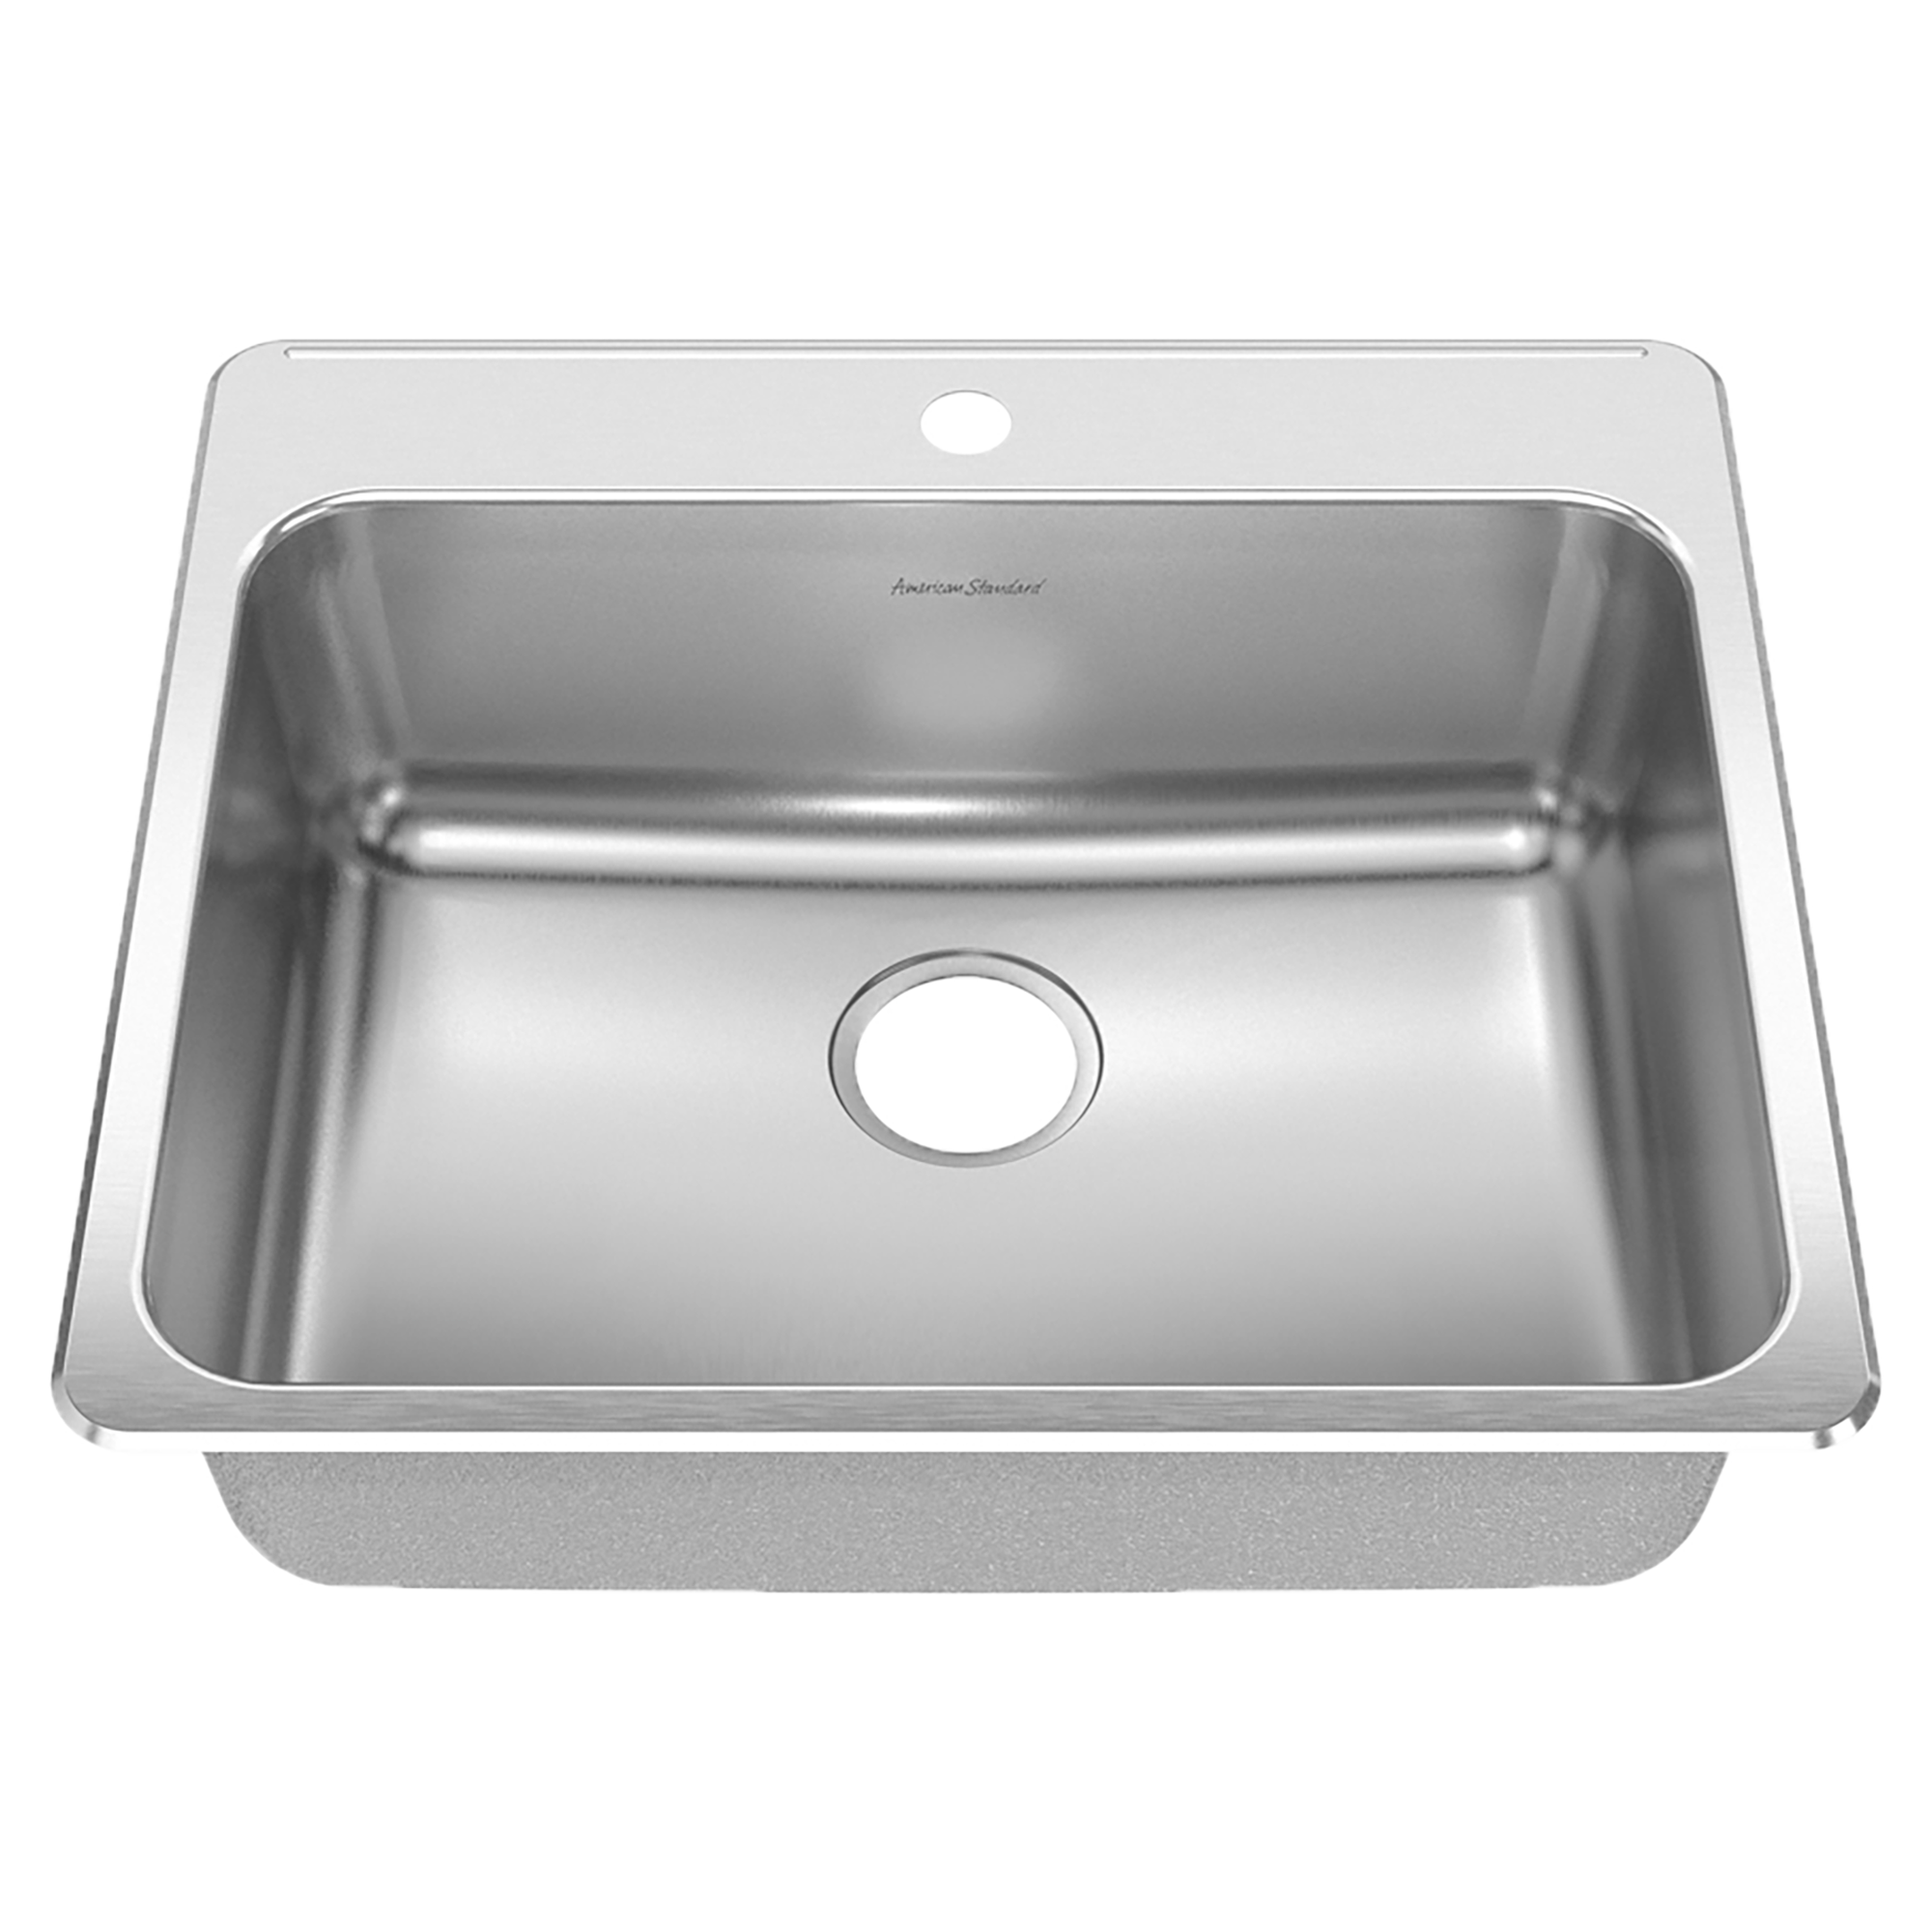 20 Amazing Kitchen Sink Design With Price Philippines Allowed To Be Able To My Personal Blog Site Wi Single Bowl Kitchen Sink Sink Single Basin Kitchen Sink